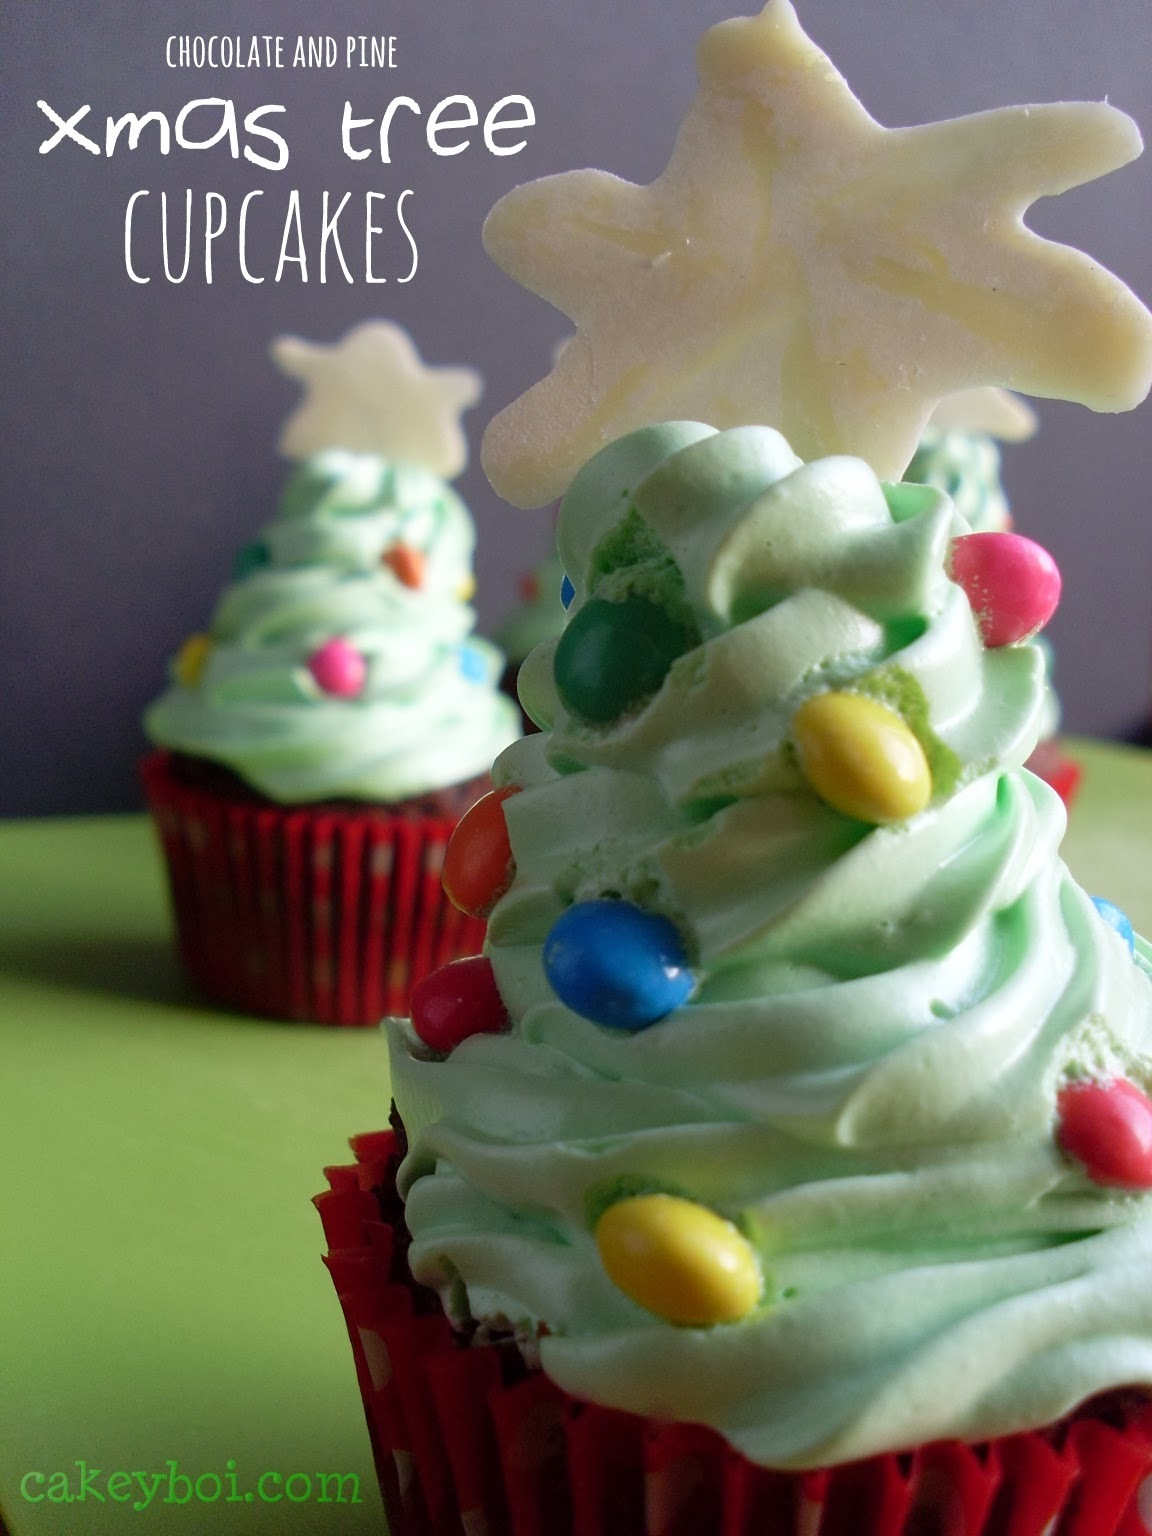 Chocolate (and Pine) Xmas Tree Cupcakes